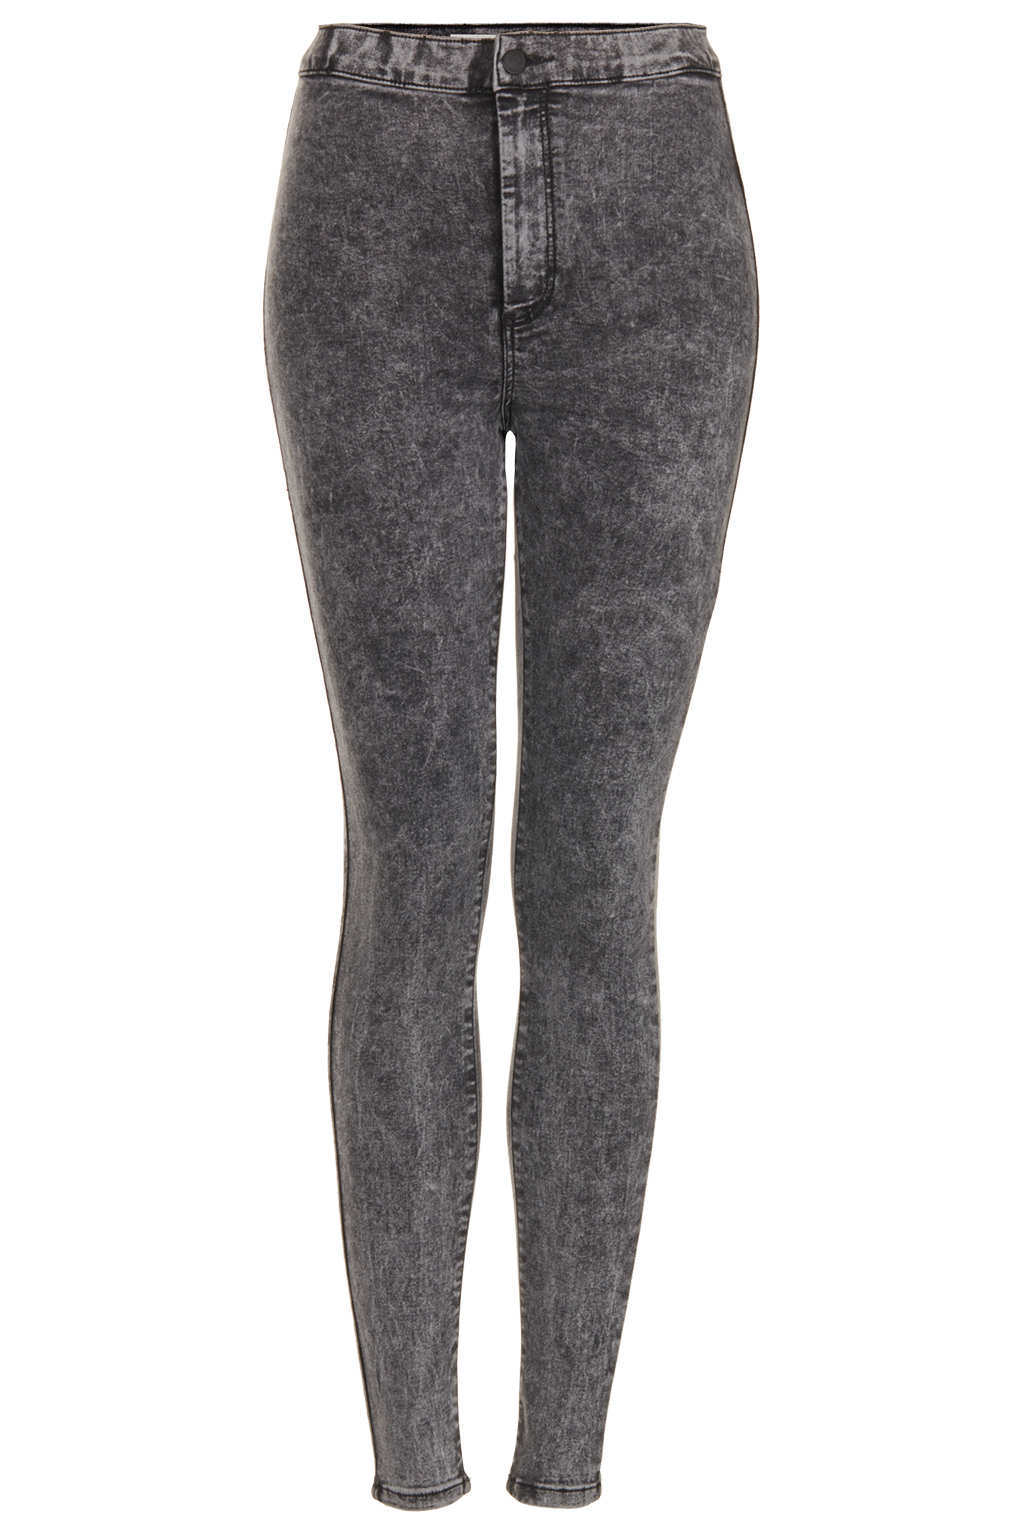 Topshop Moto Black Joni Super High Waisted Jeans in Gray | Lyst